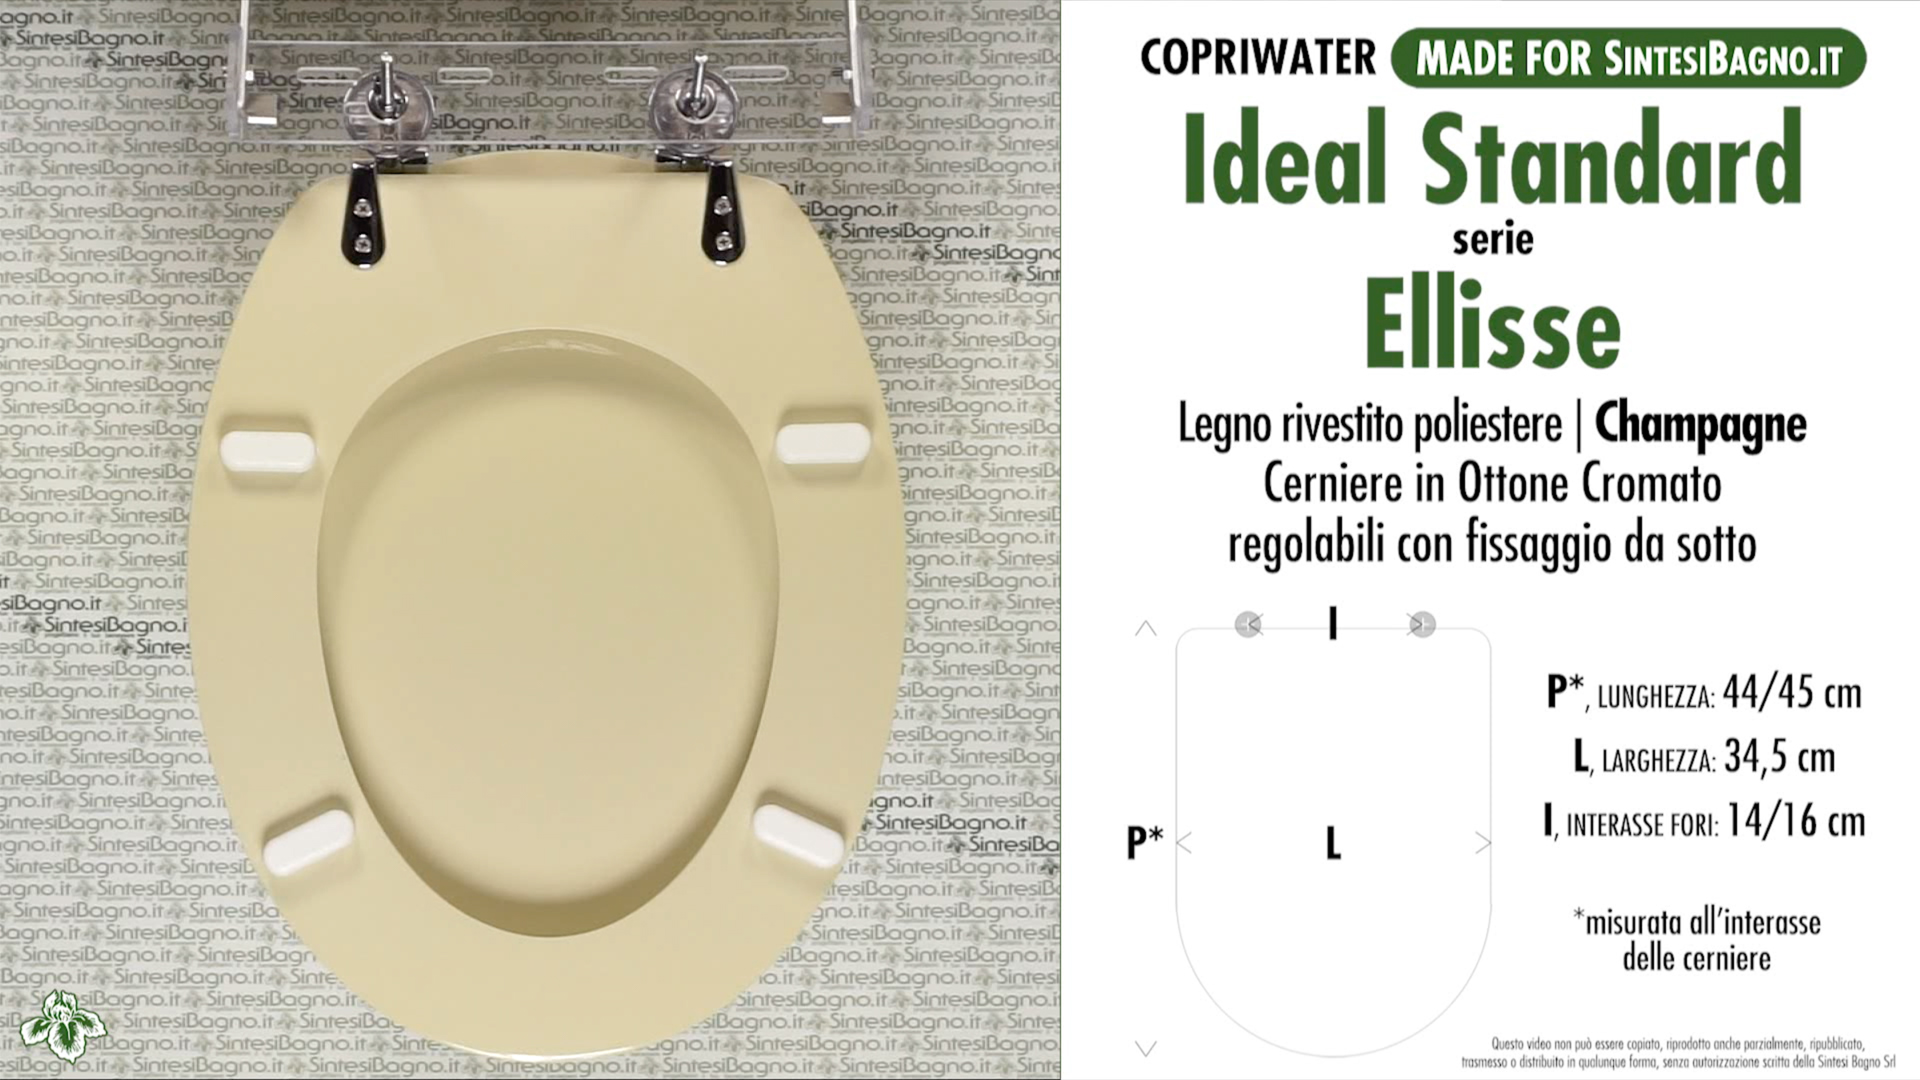 Schede tecniche misure copriwater ideal standard serie ellisse for Copriwater ideal